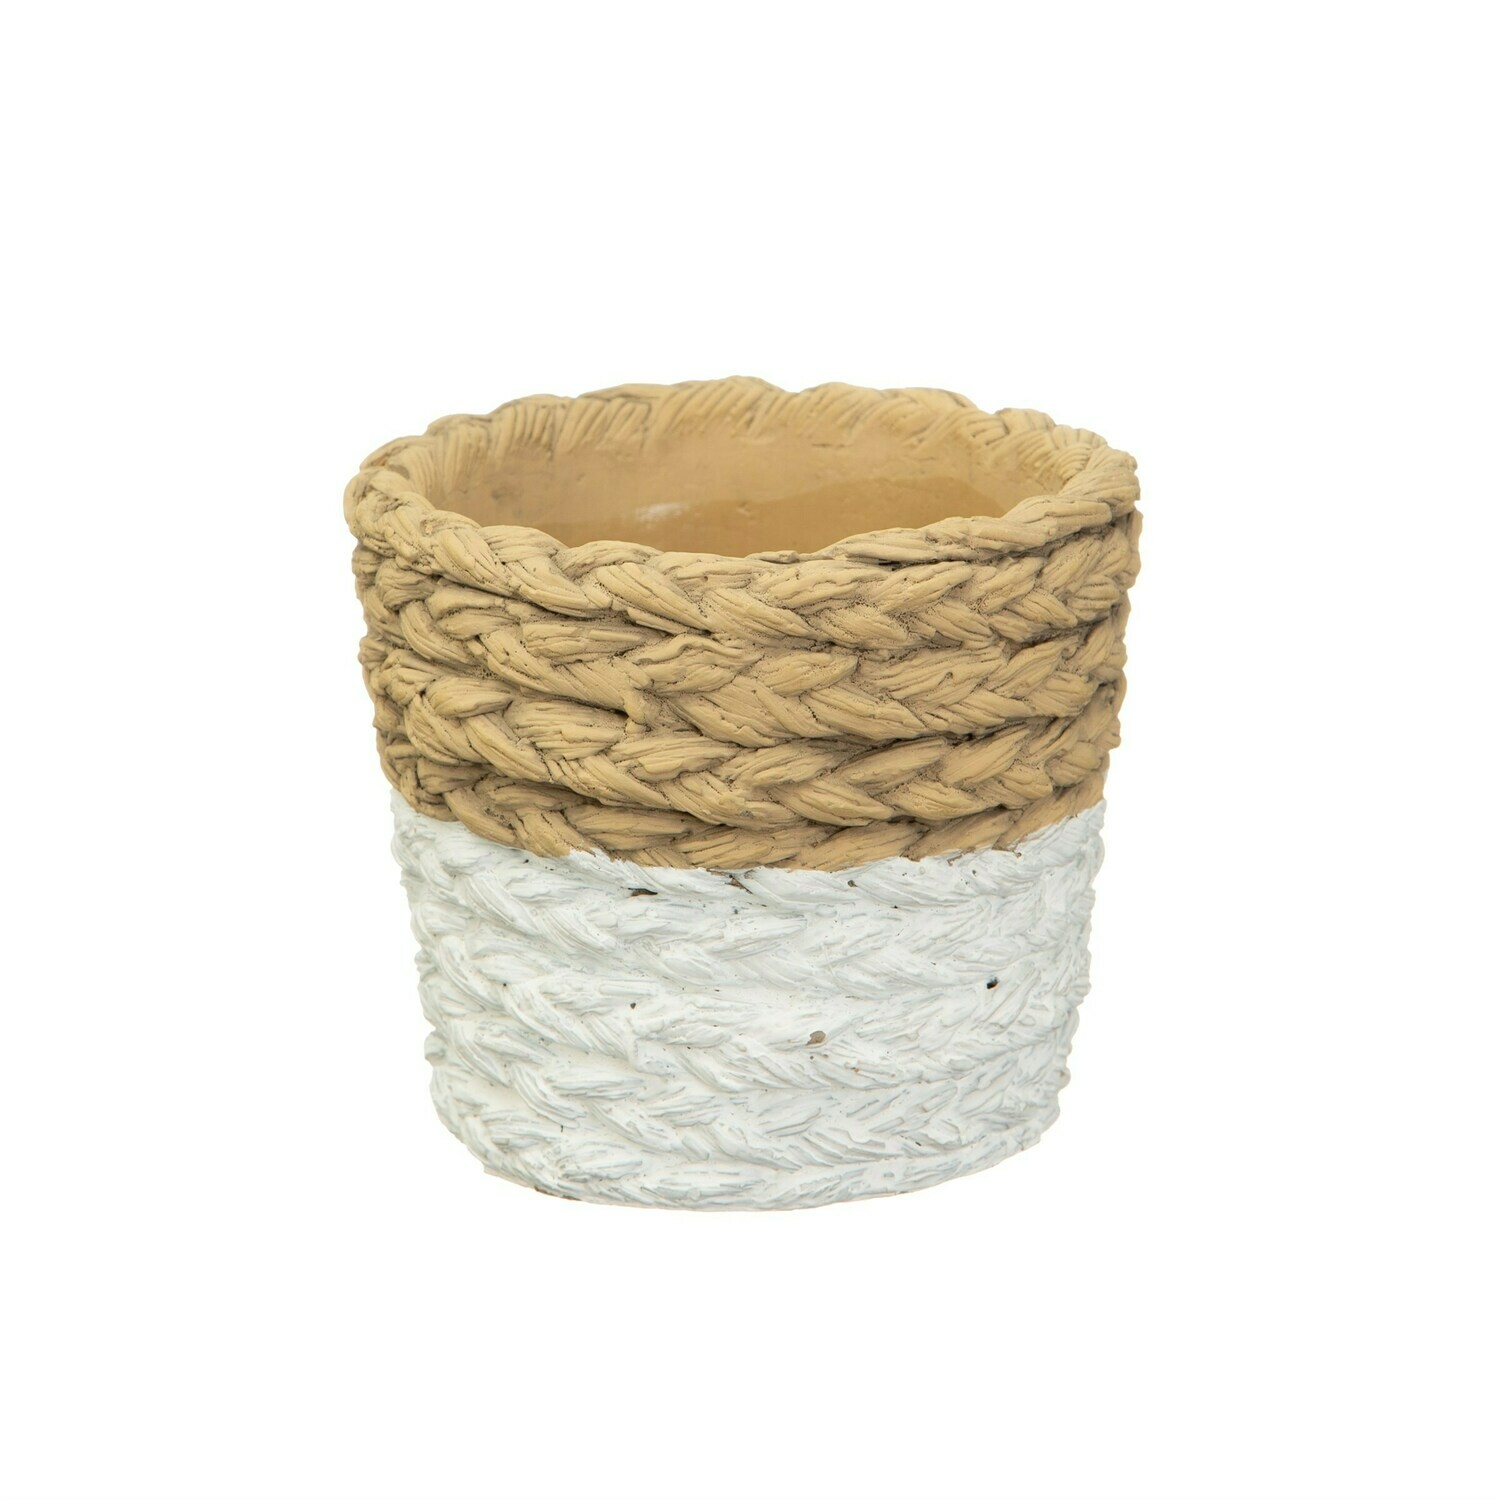 White Dipped Cement Planter